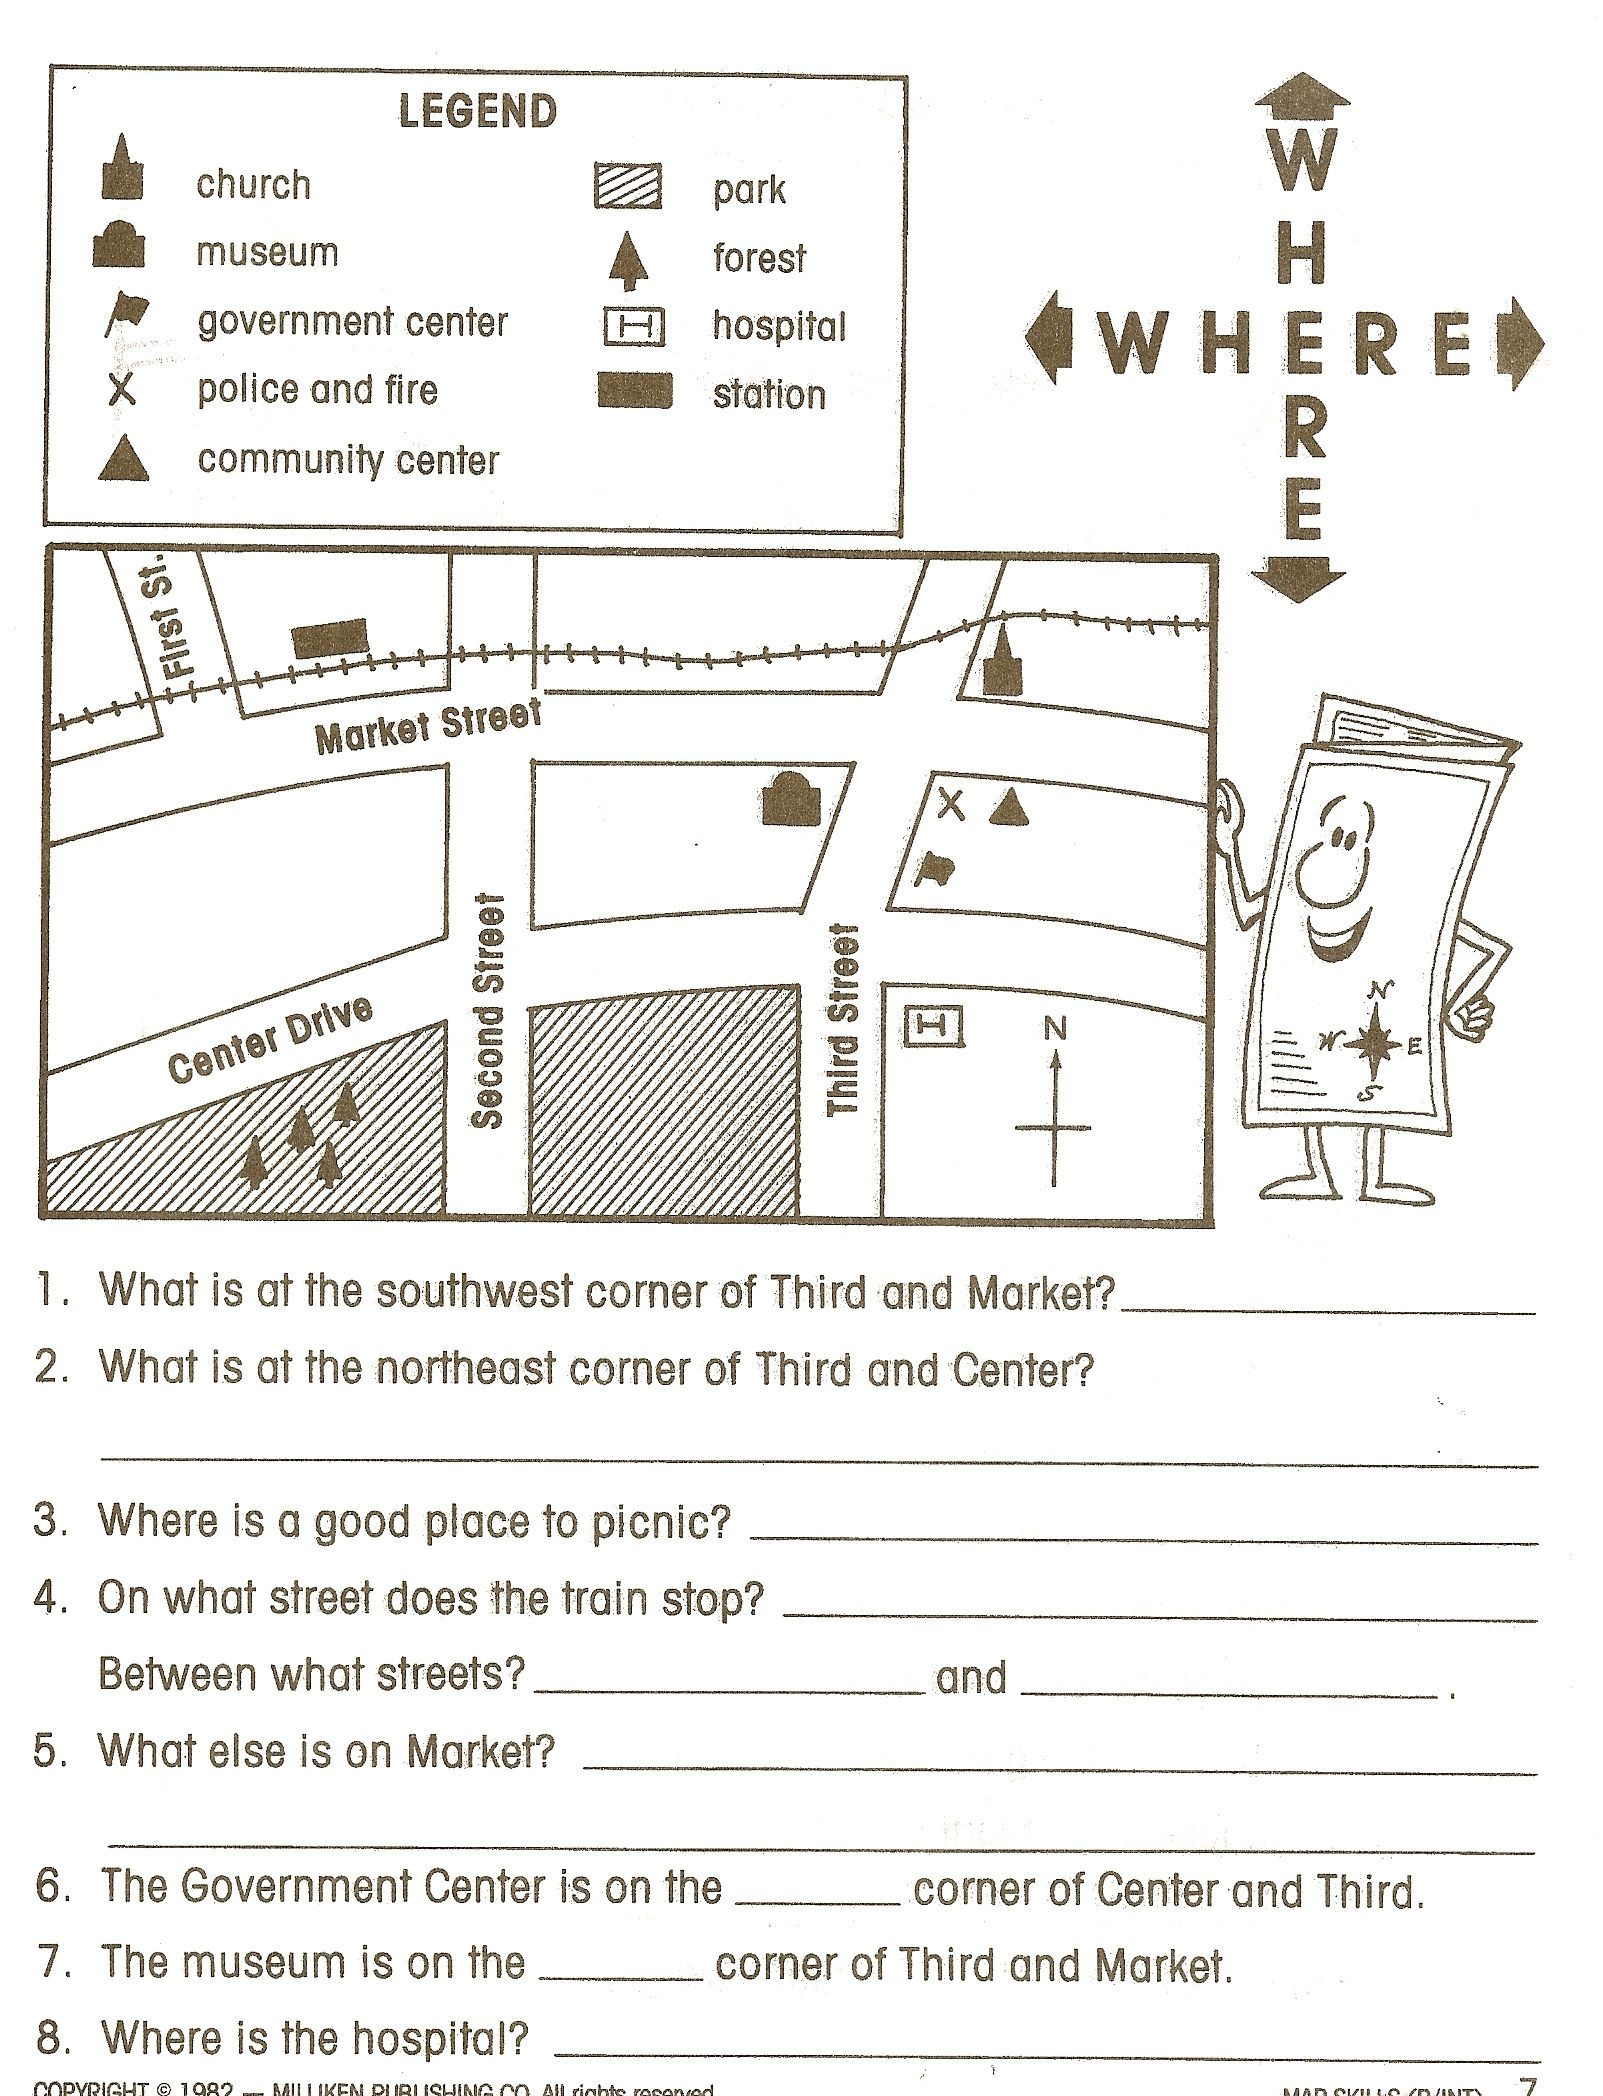 Free 6th Grade Social Stu S Worksheets   Printable Worksheets and  Activities for Teachers [ 2096 x 1603 Pixel ]